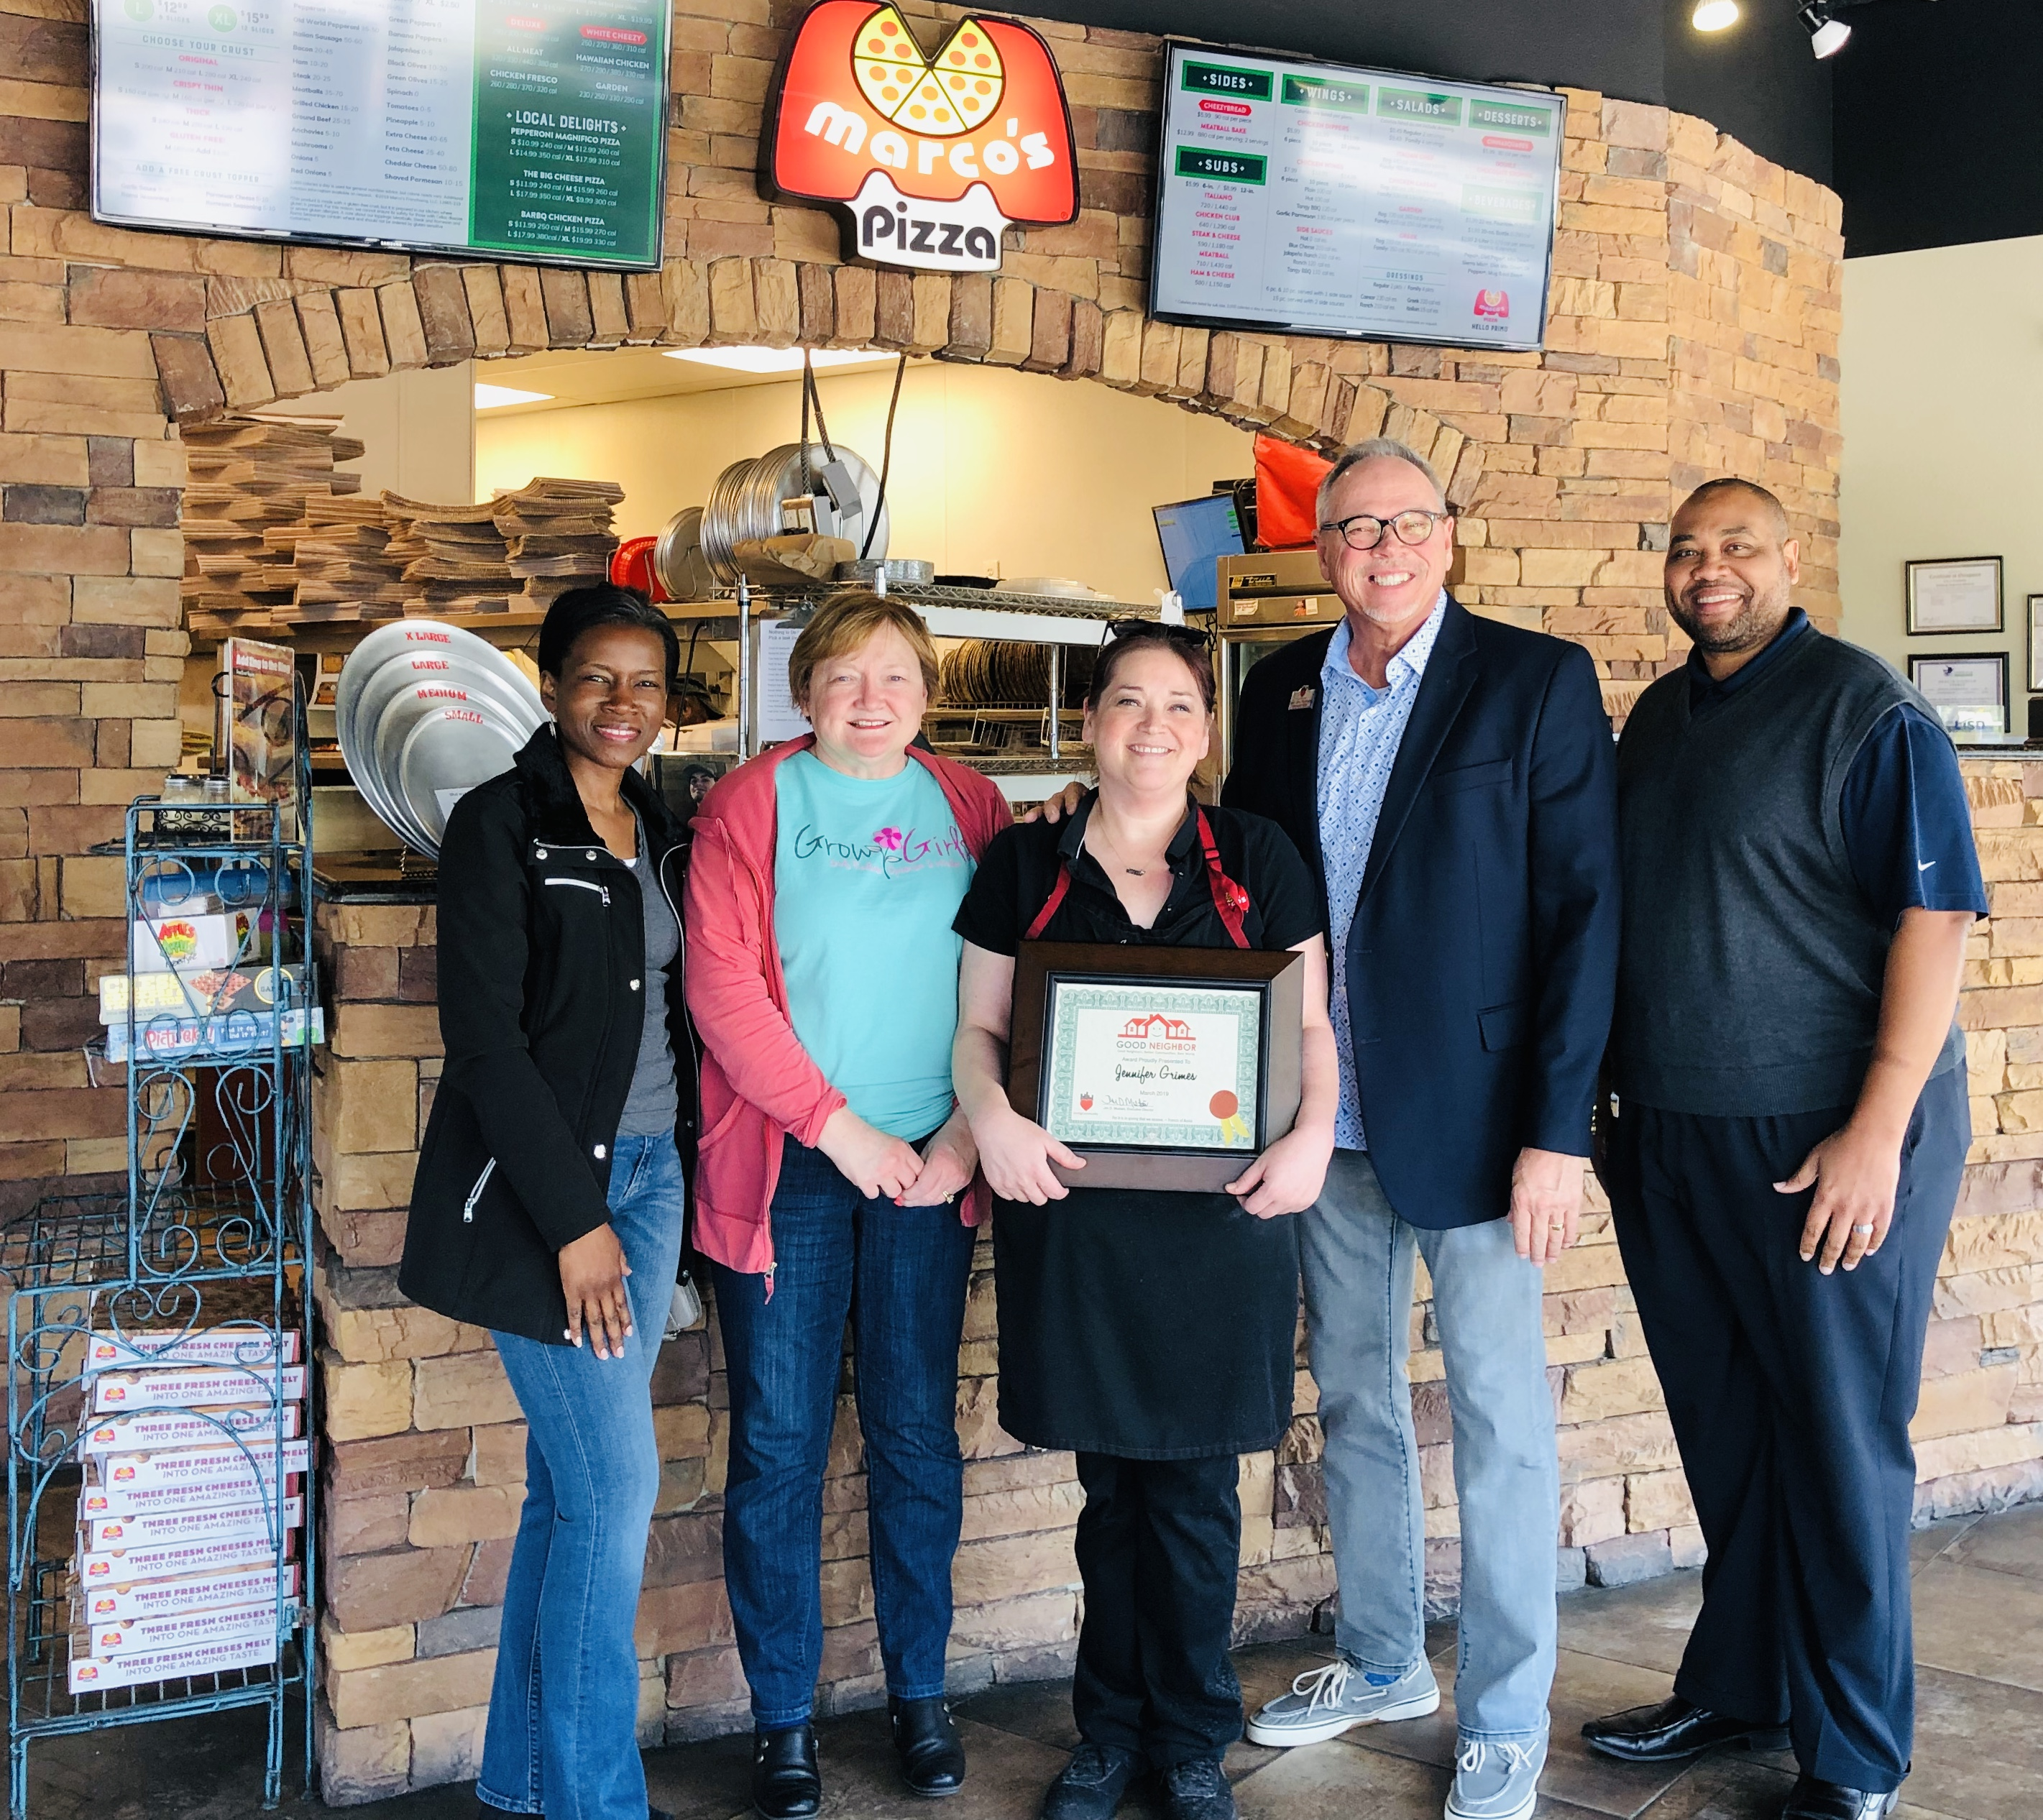 Jennifer Grimes and Marcos Pizza Recipient of Good Neighbor Award